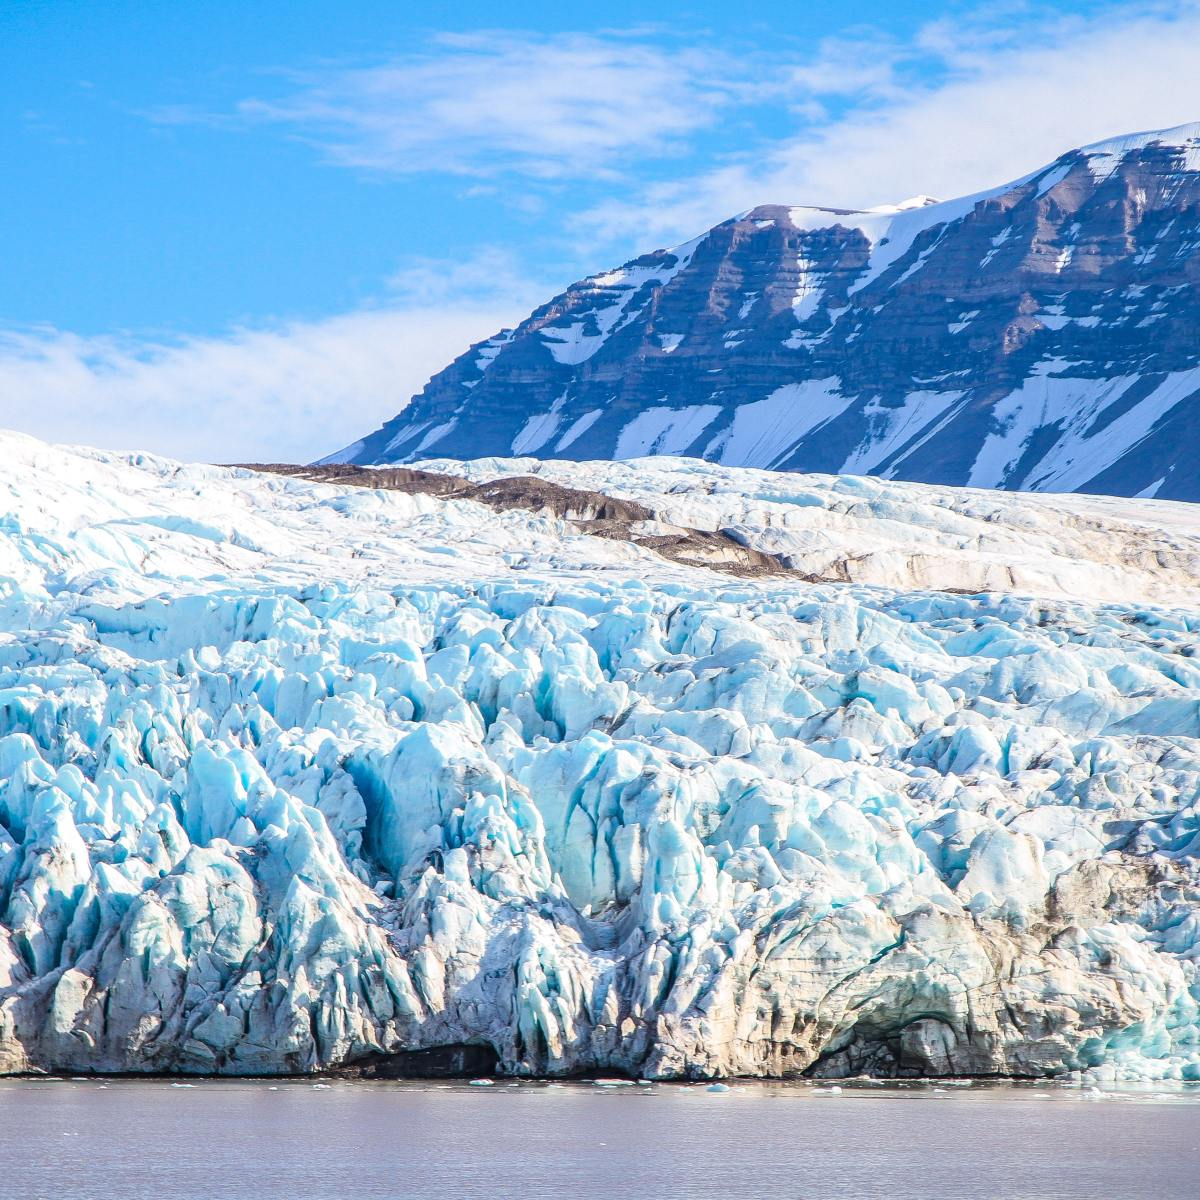 why are glaciers blue?